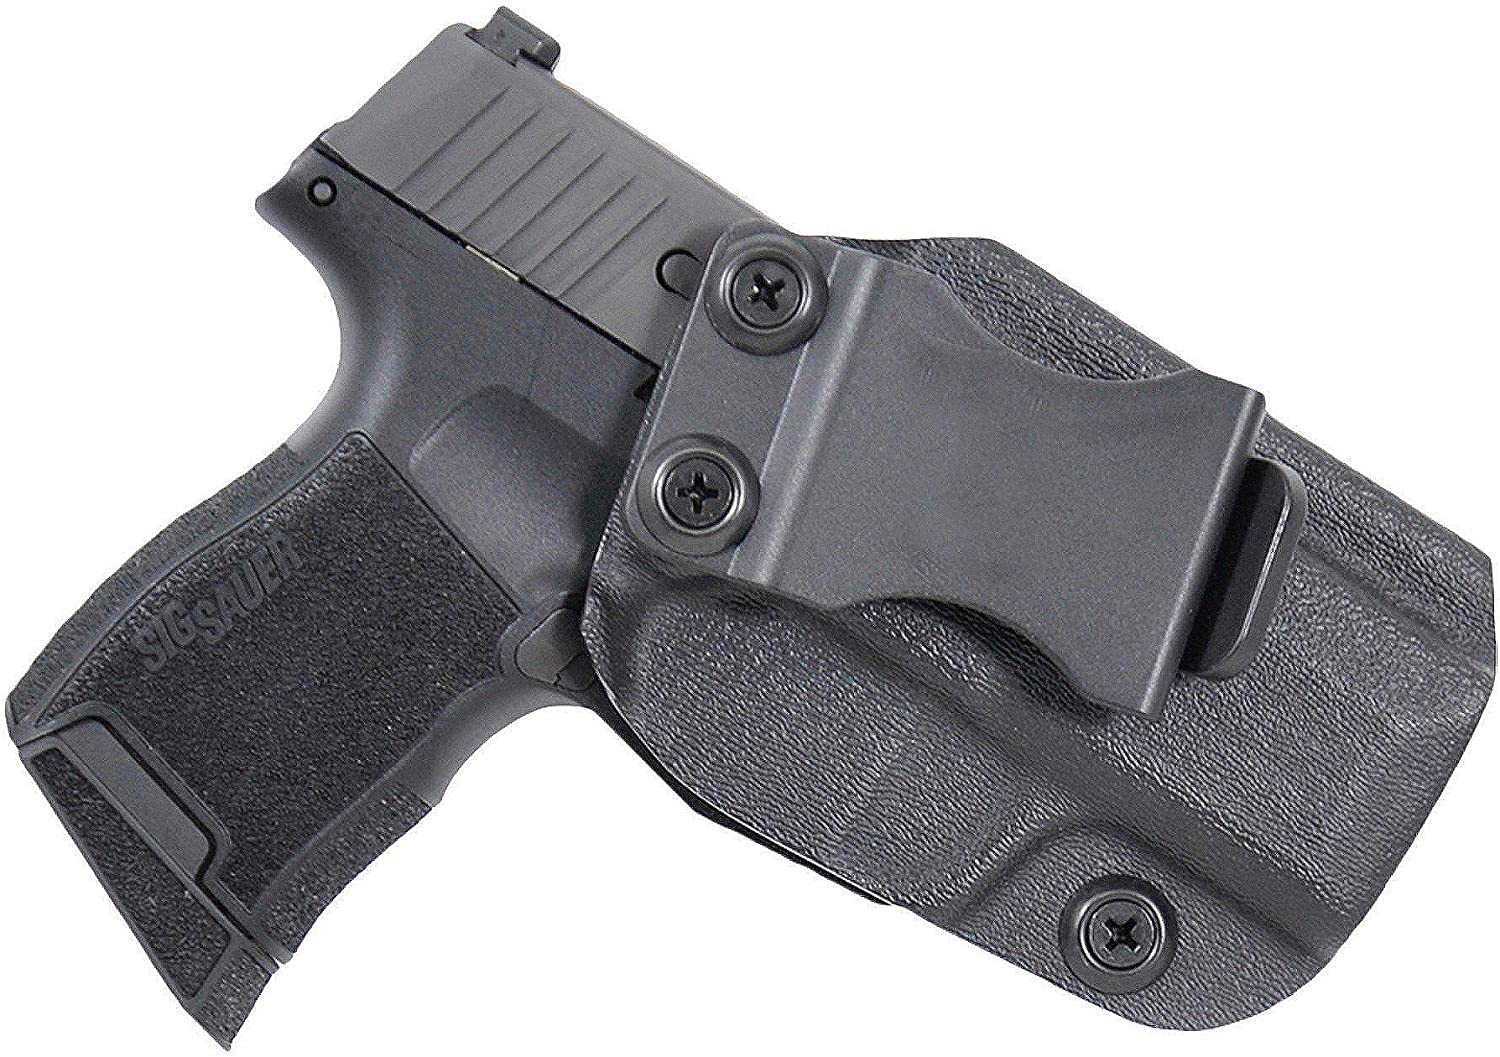 Black Scorpion Outdoor Gear IWB KYDEX Holster: Fits SIG SAUER P365 | Made in USA | Custom Fit | Inside Waistband | Adjustable Cant/Retention System (Right Hand)